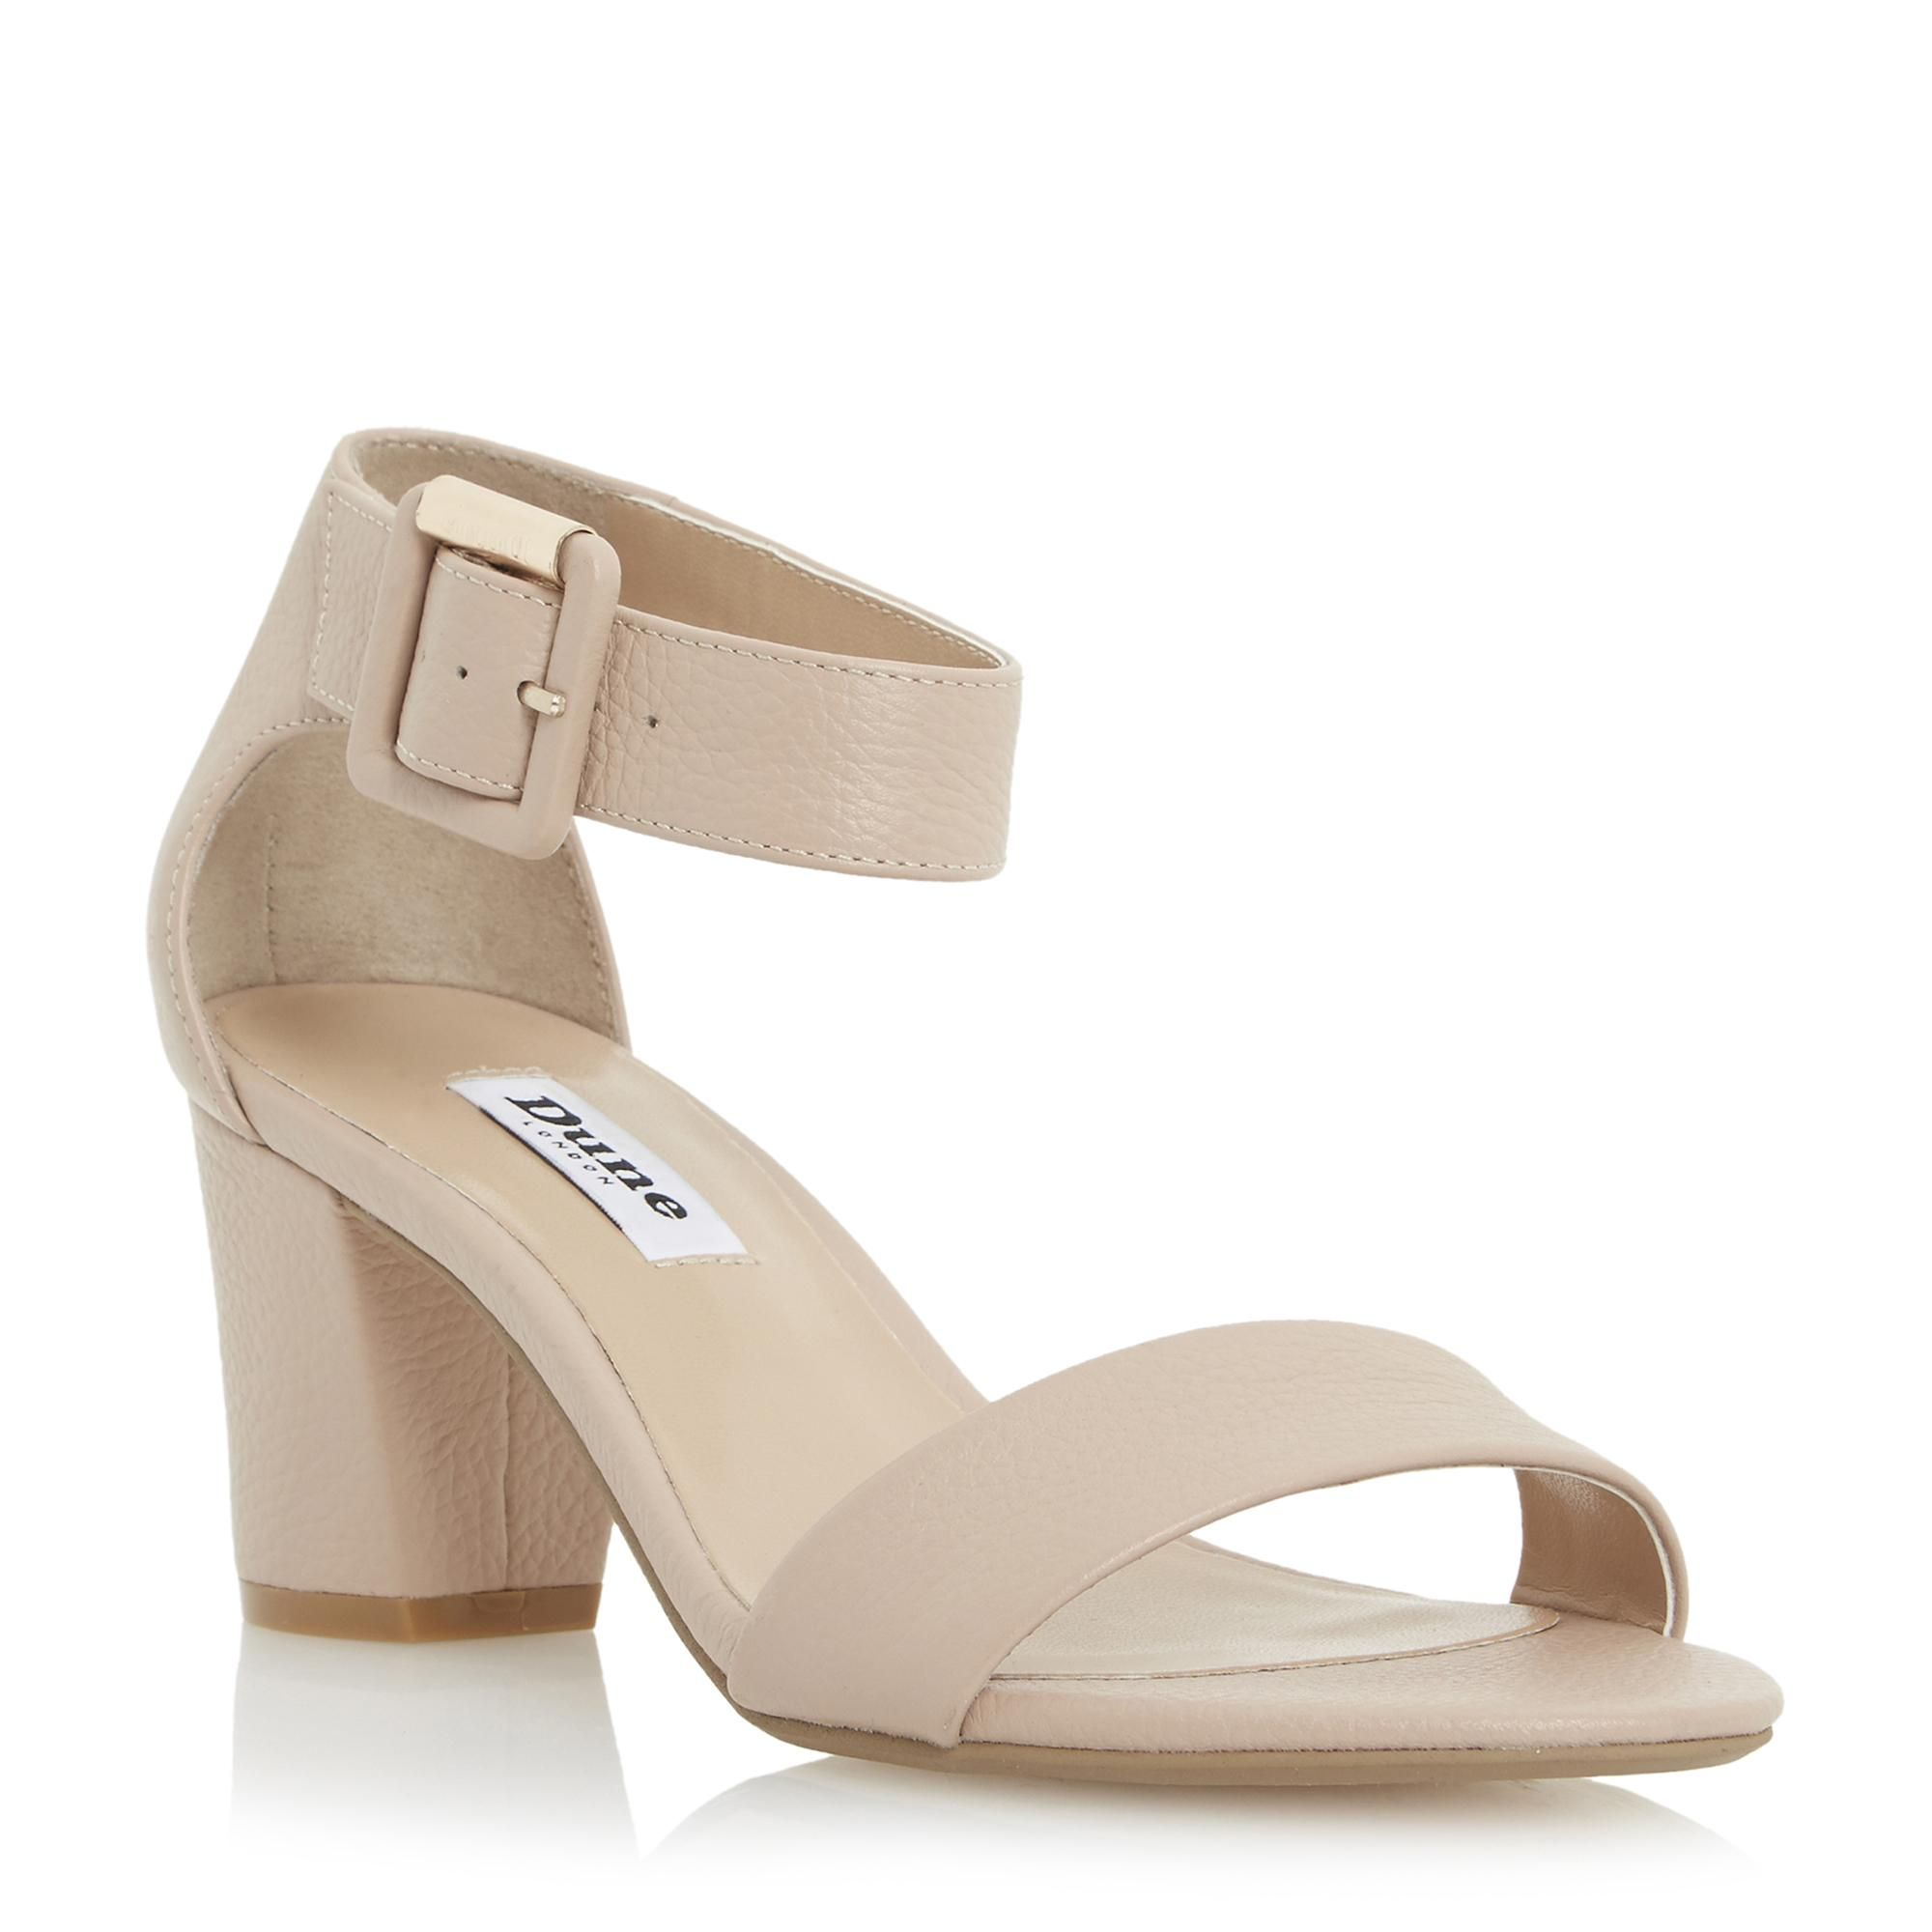 a3e154db71 DUNE LADIES JOYE - Two Part Block Heel Sandal - nude | Dune Shoes Online